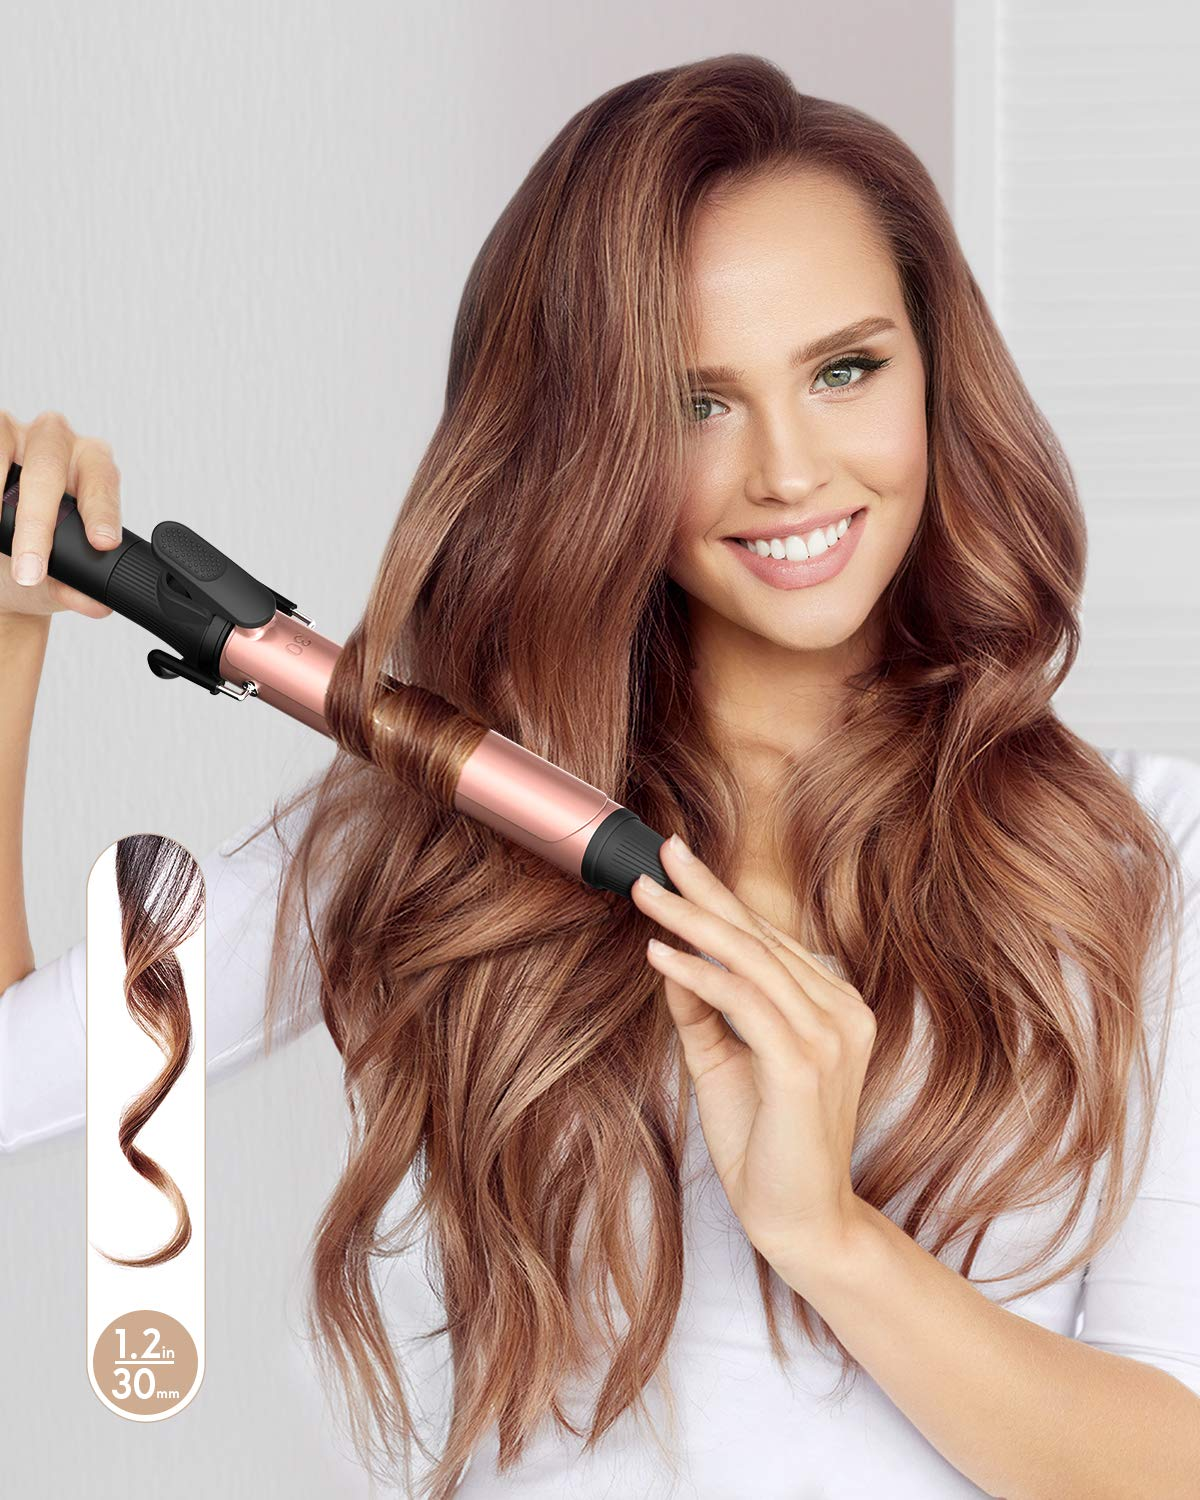 KIPOZI 1.2 Inch Curling Iron with Ceramic Coating Barrel results